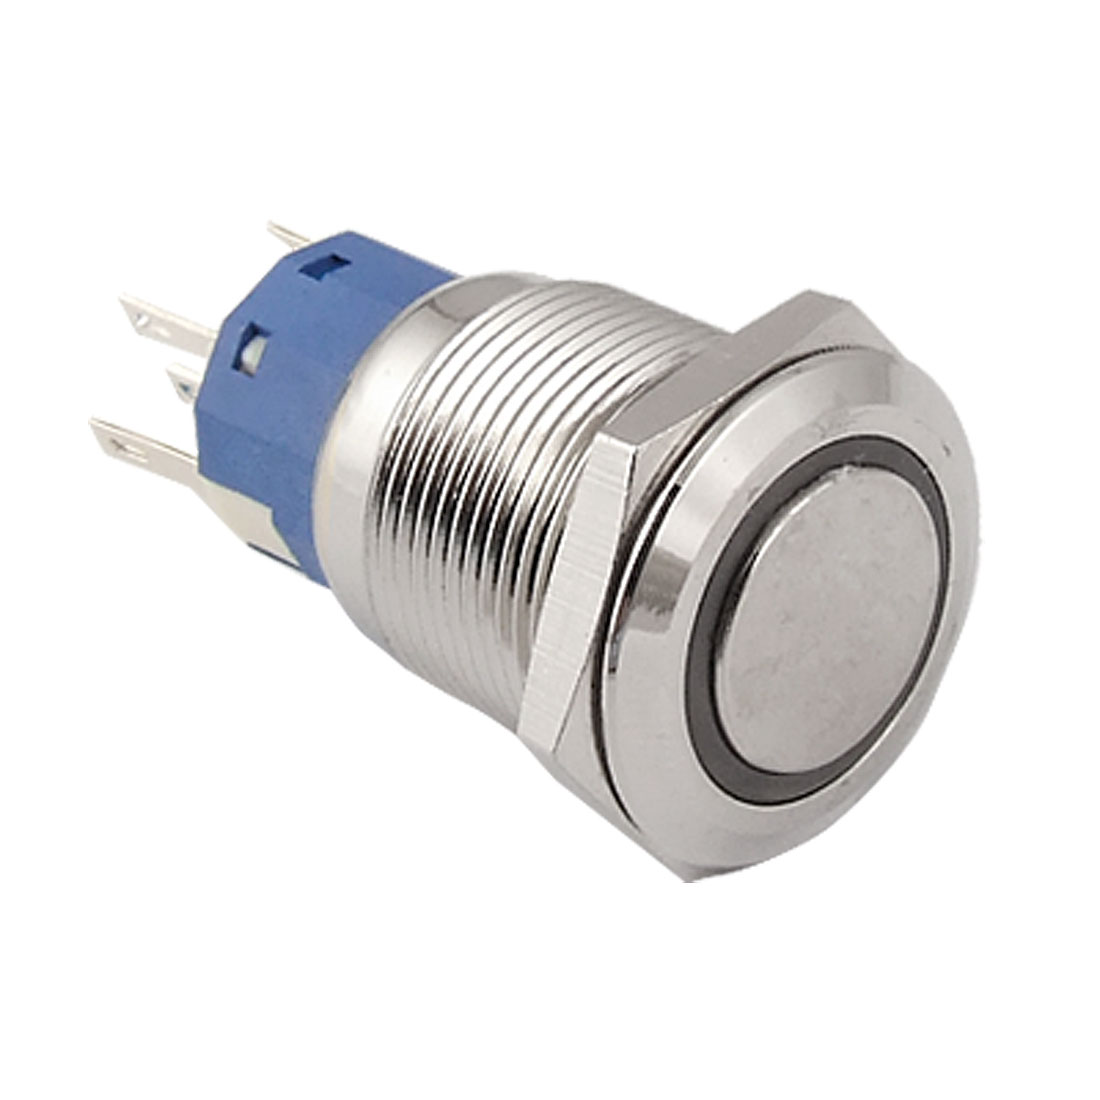 Blue Ring Illuminated Momentary 19mm Thread Stainless Push Button Switch